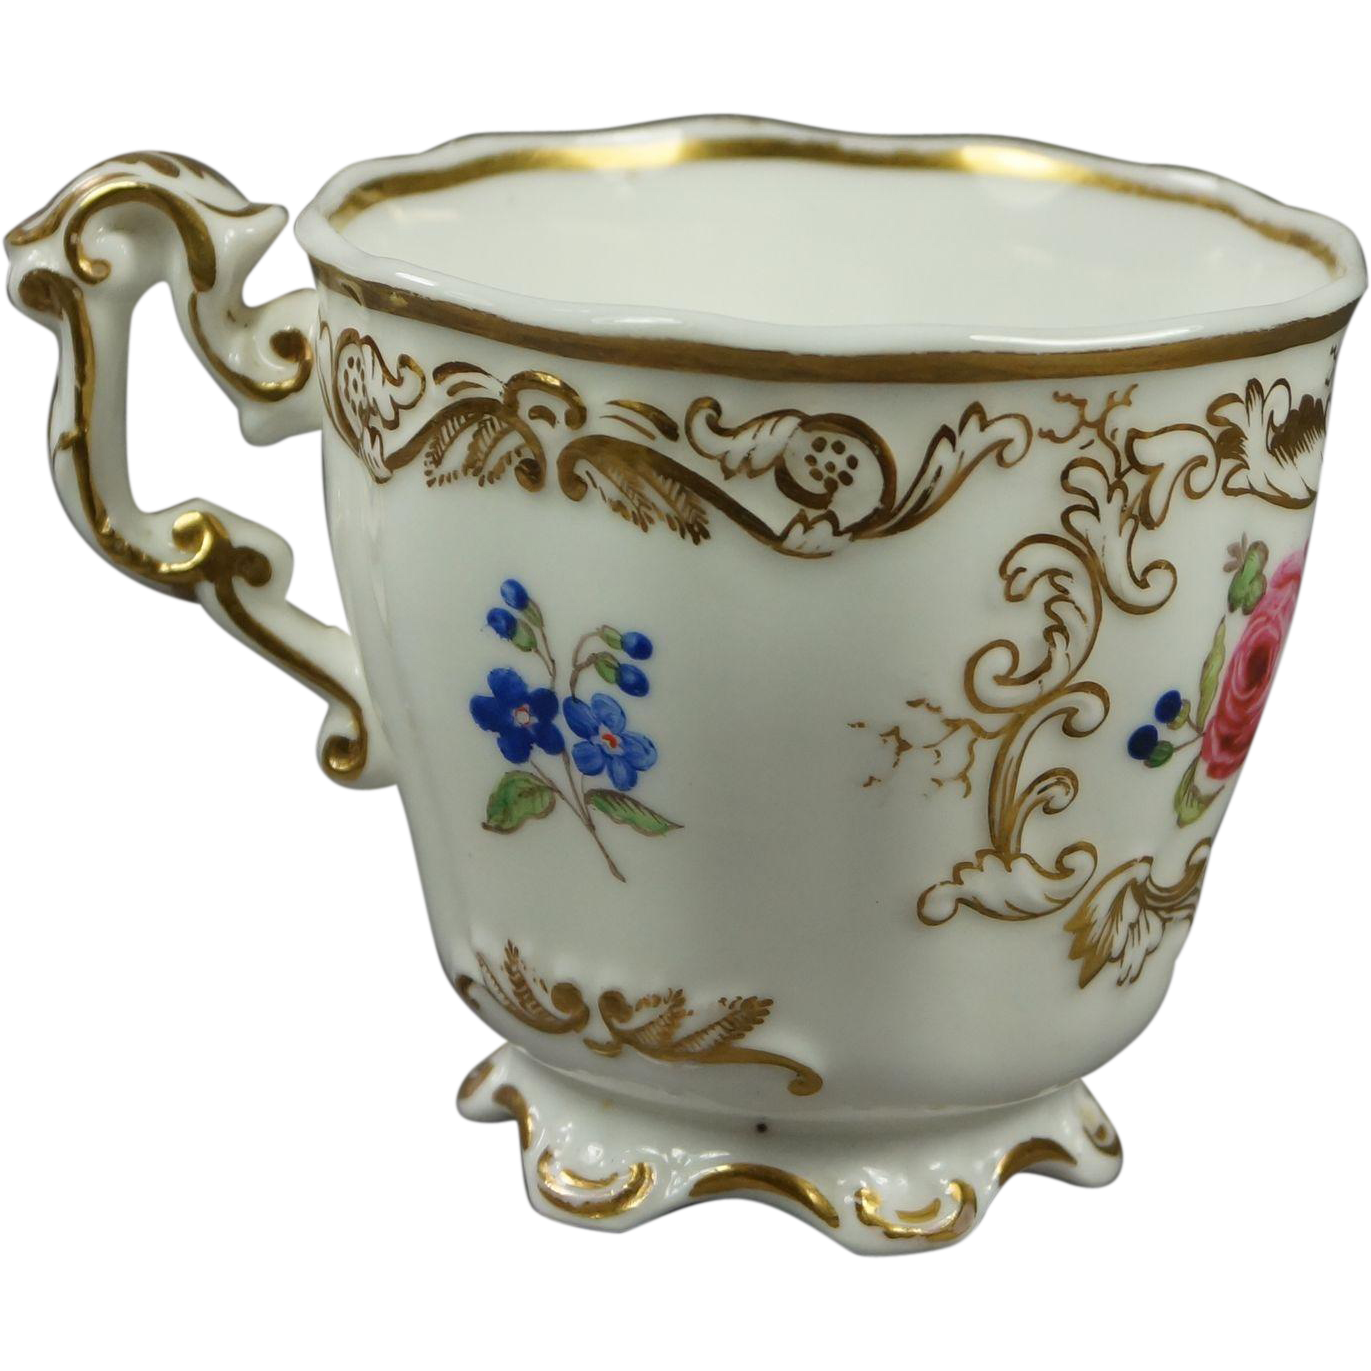 Antique English Porcelain Cup Copeland And Garrett Circa 1840